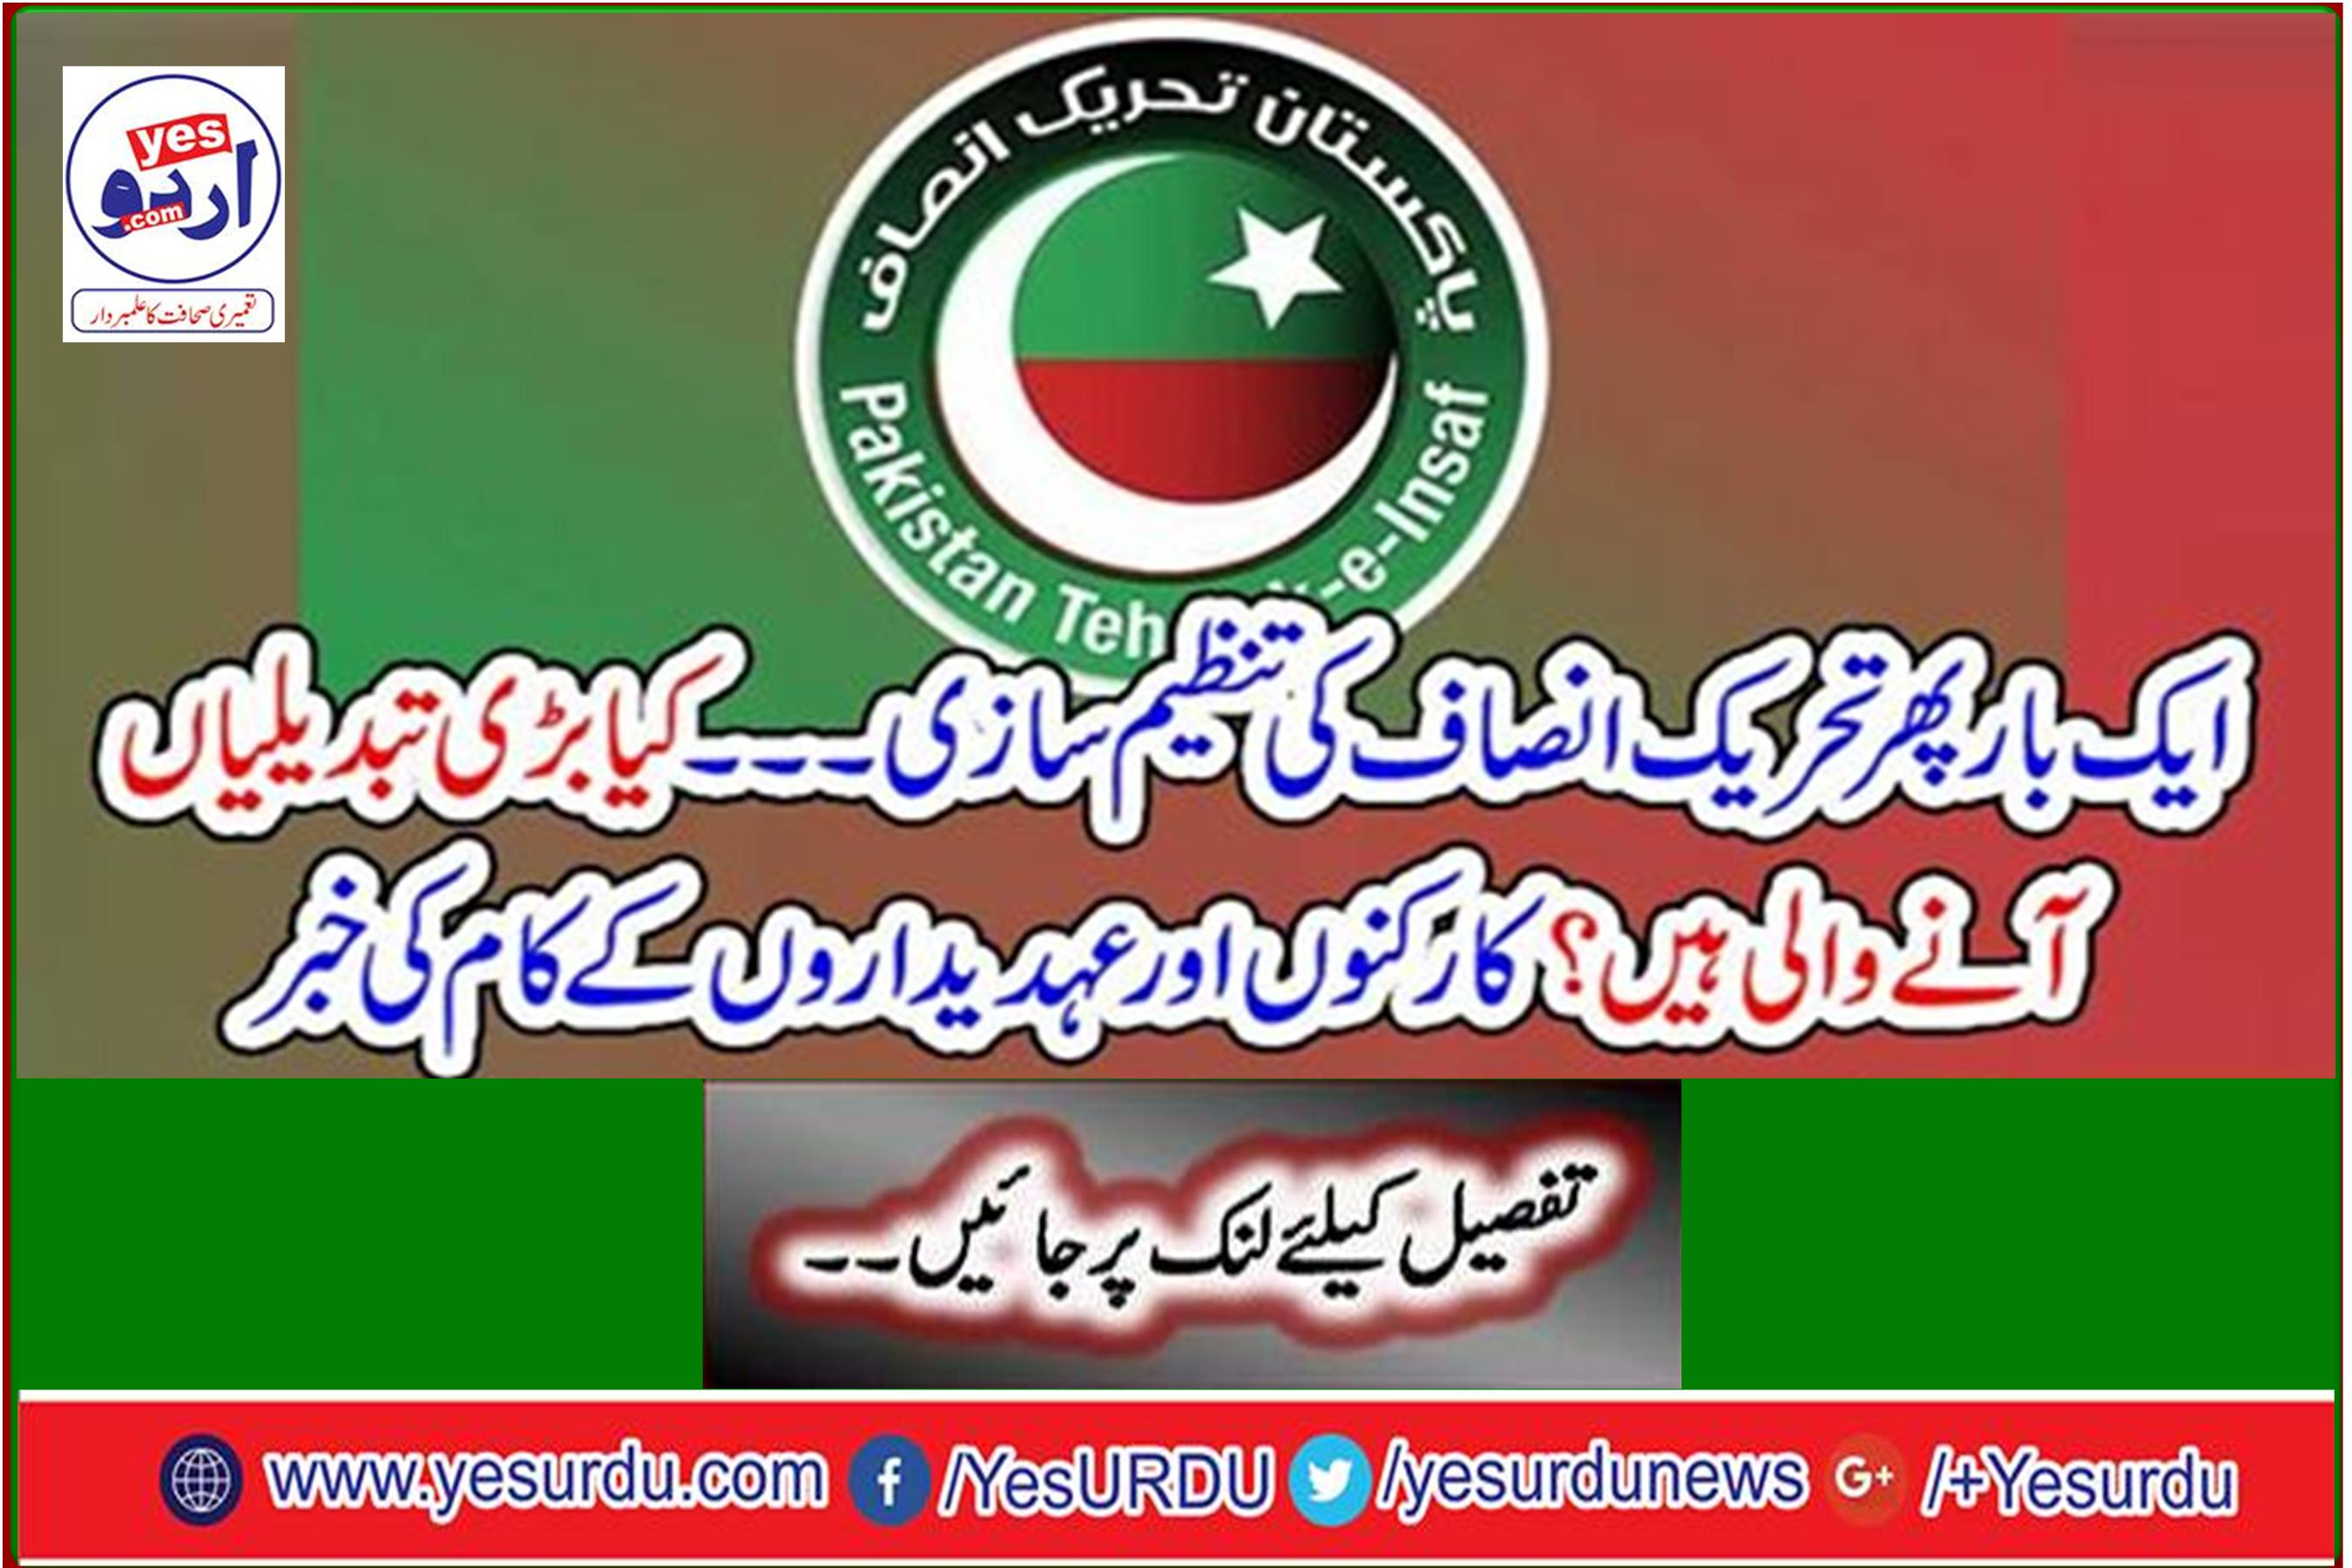 Once again the organization of PTI - What big changes are coming? News of the work of workers and officials